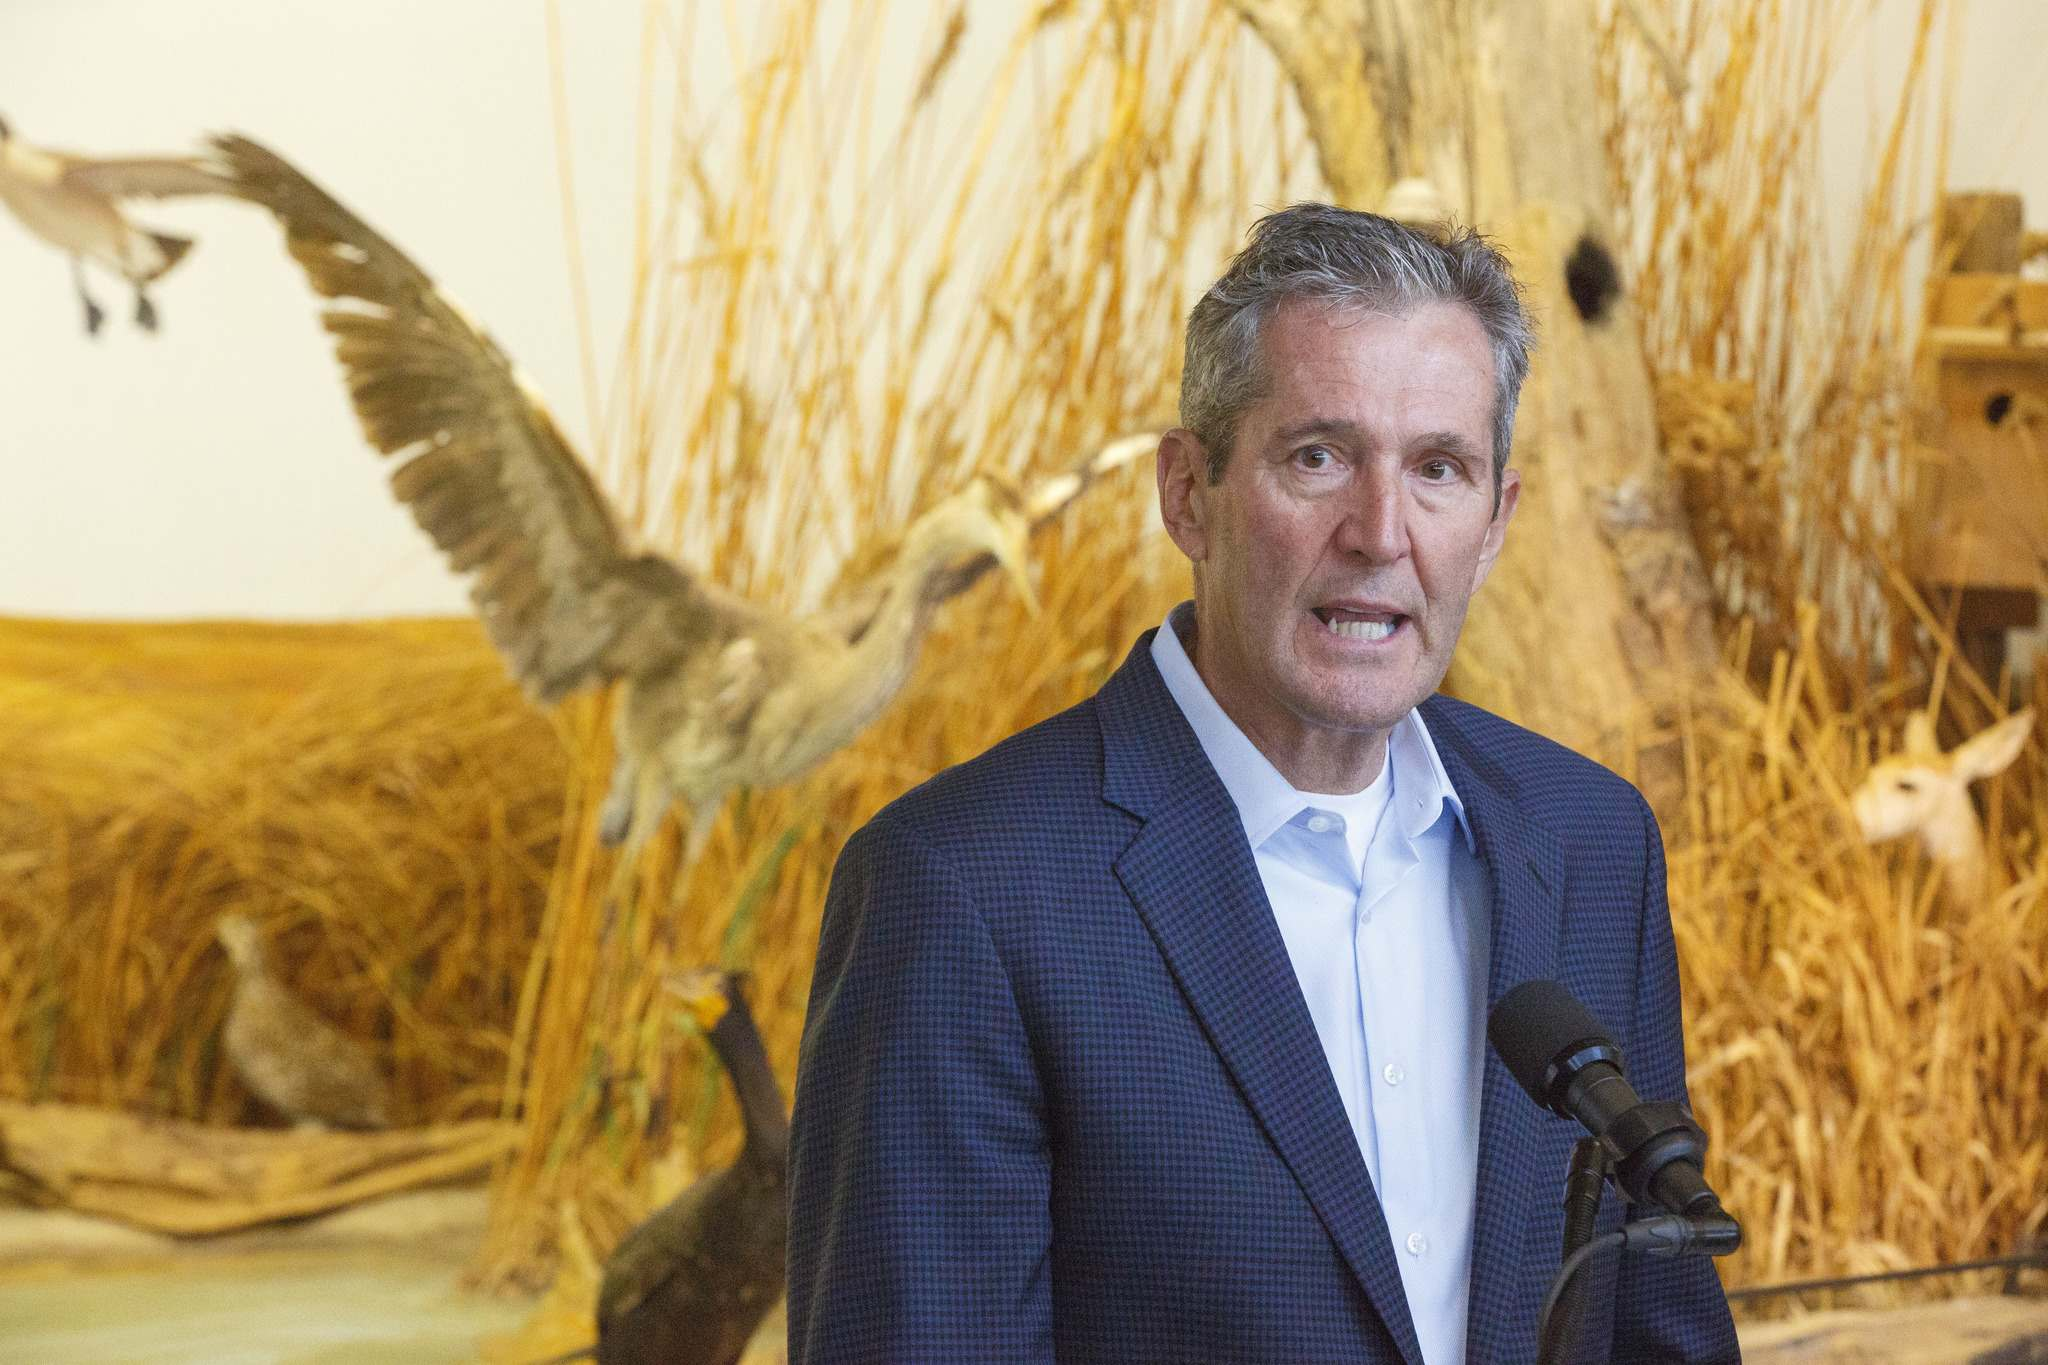 MIKE DEAL / WINNIPEG FREE PRESS</p><p>Manitoba PC Leader Brian Pallister announces during a news conference at Oak Hammock Marsh Interpretive Centre Tuesday morning, that if his party is re-elected they would provide $50 million more for wetland protection and set Canada's highest biofuel standards to reduce emissions.</p>